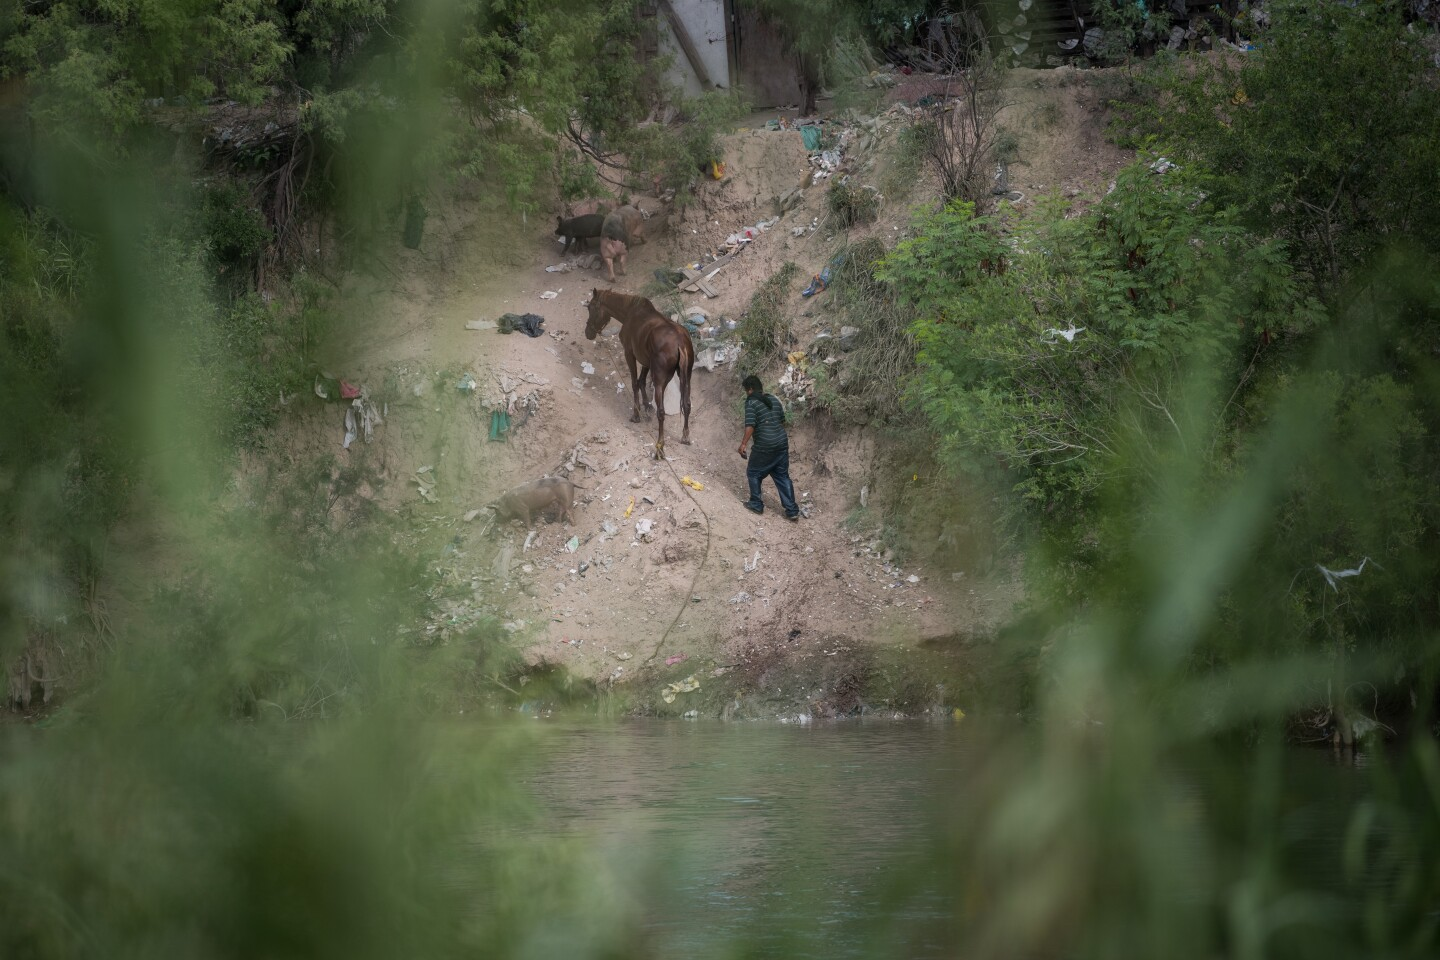 A man and horse walk up a bank of the Rio Grande after getting out of the water on the Mexican side of the river at a spot frequently used as a migrant crossing Tuesday, July 23, 2019, as seen from the U.S. side near Mission, Texas.